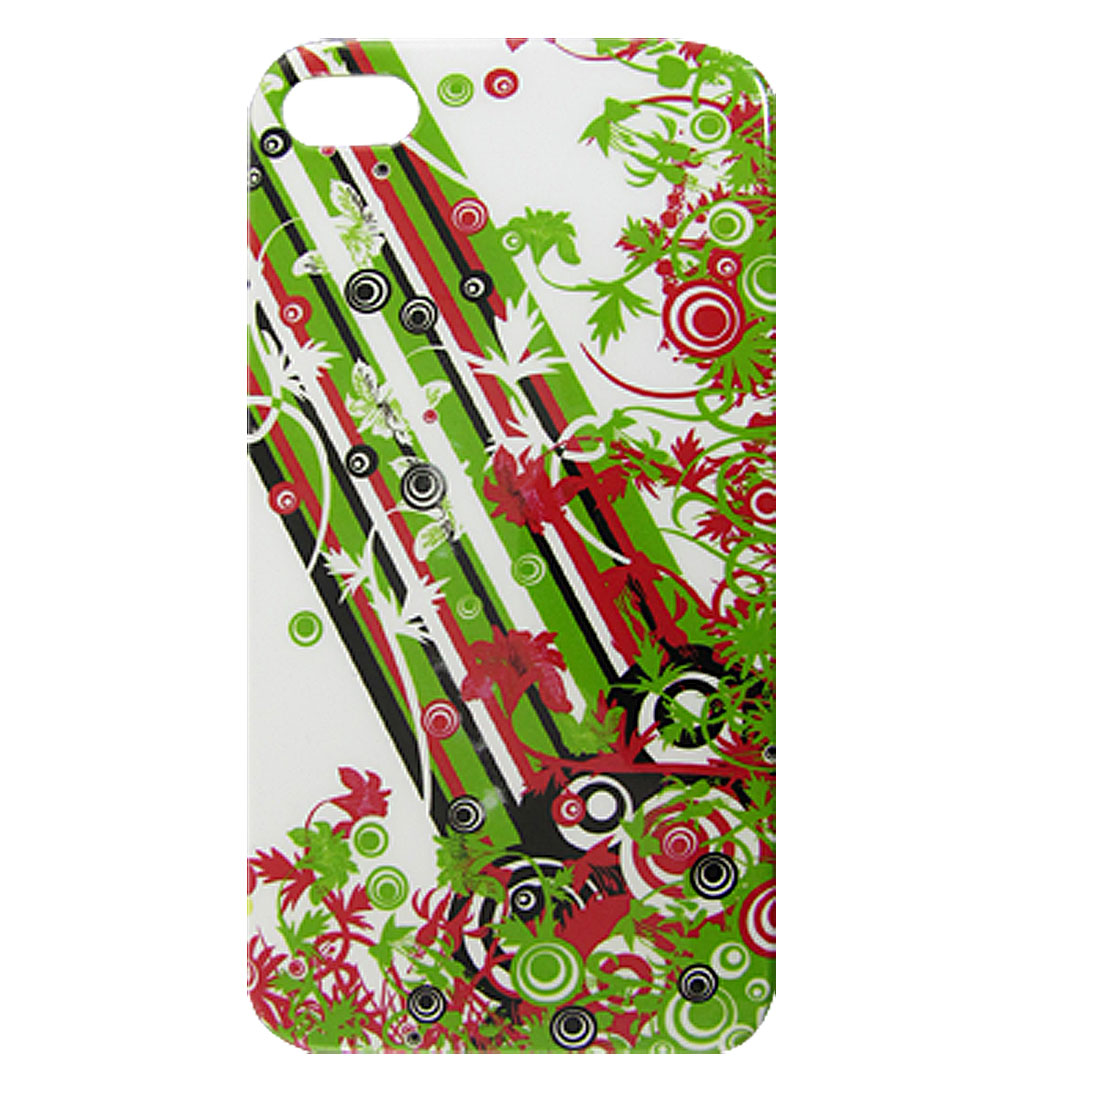 Green Stripe Circle Flower Print White IMD Hard Back Case Shell for iPhone 4 4G 4S